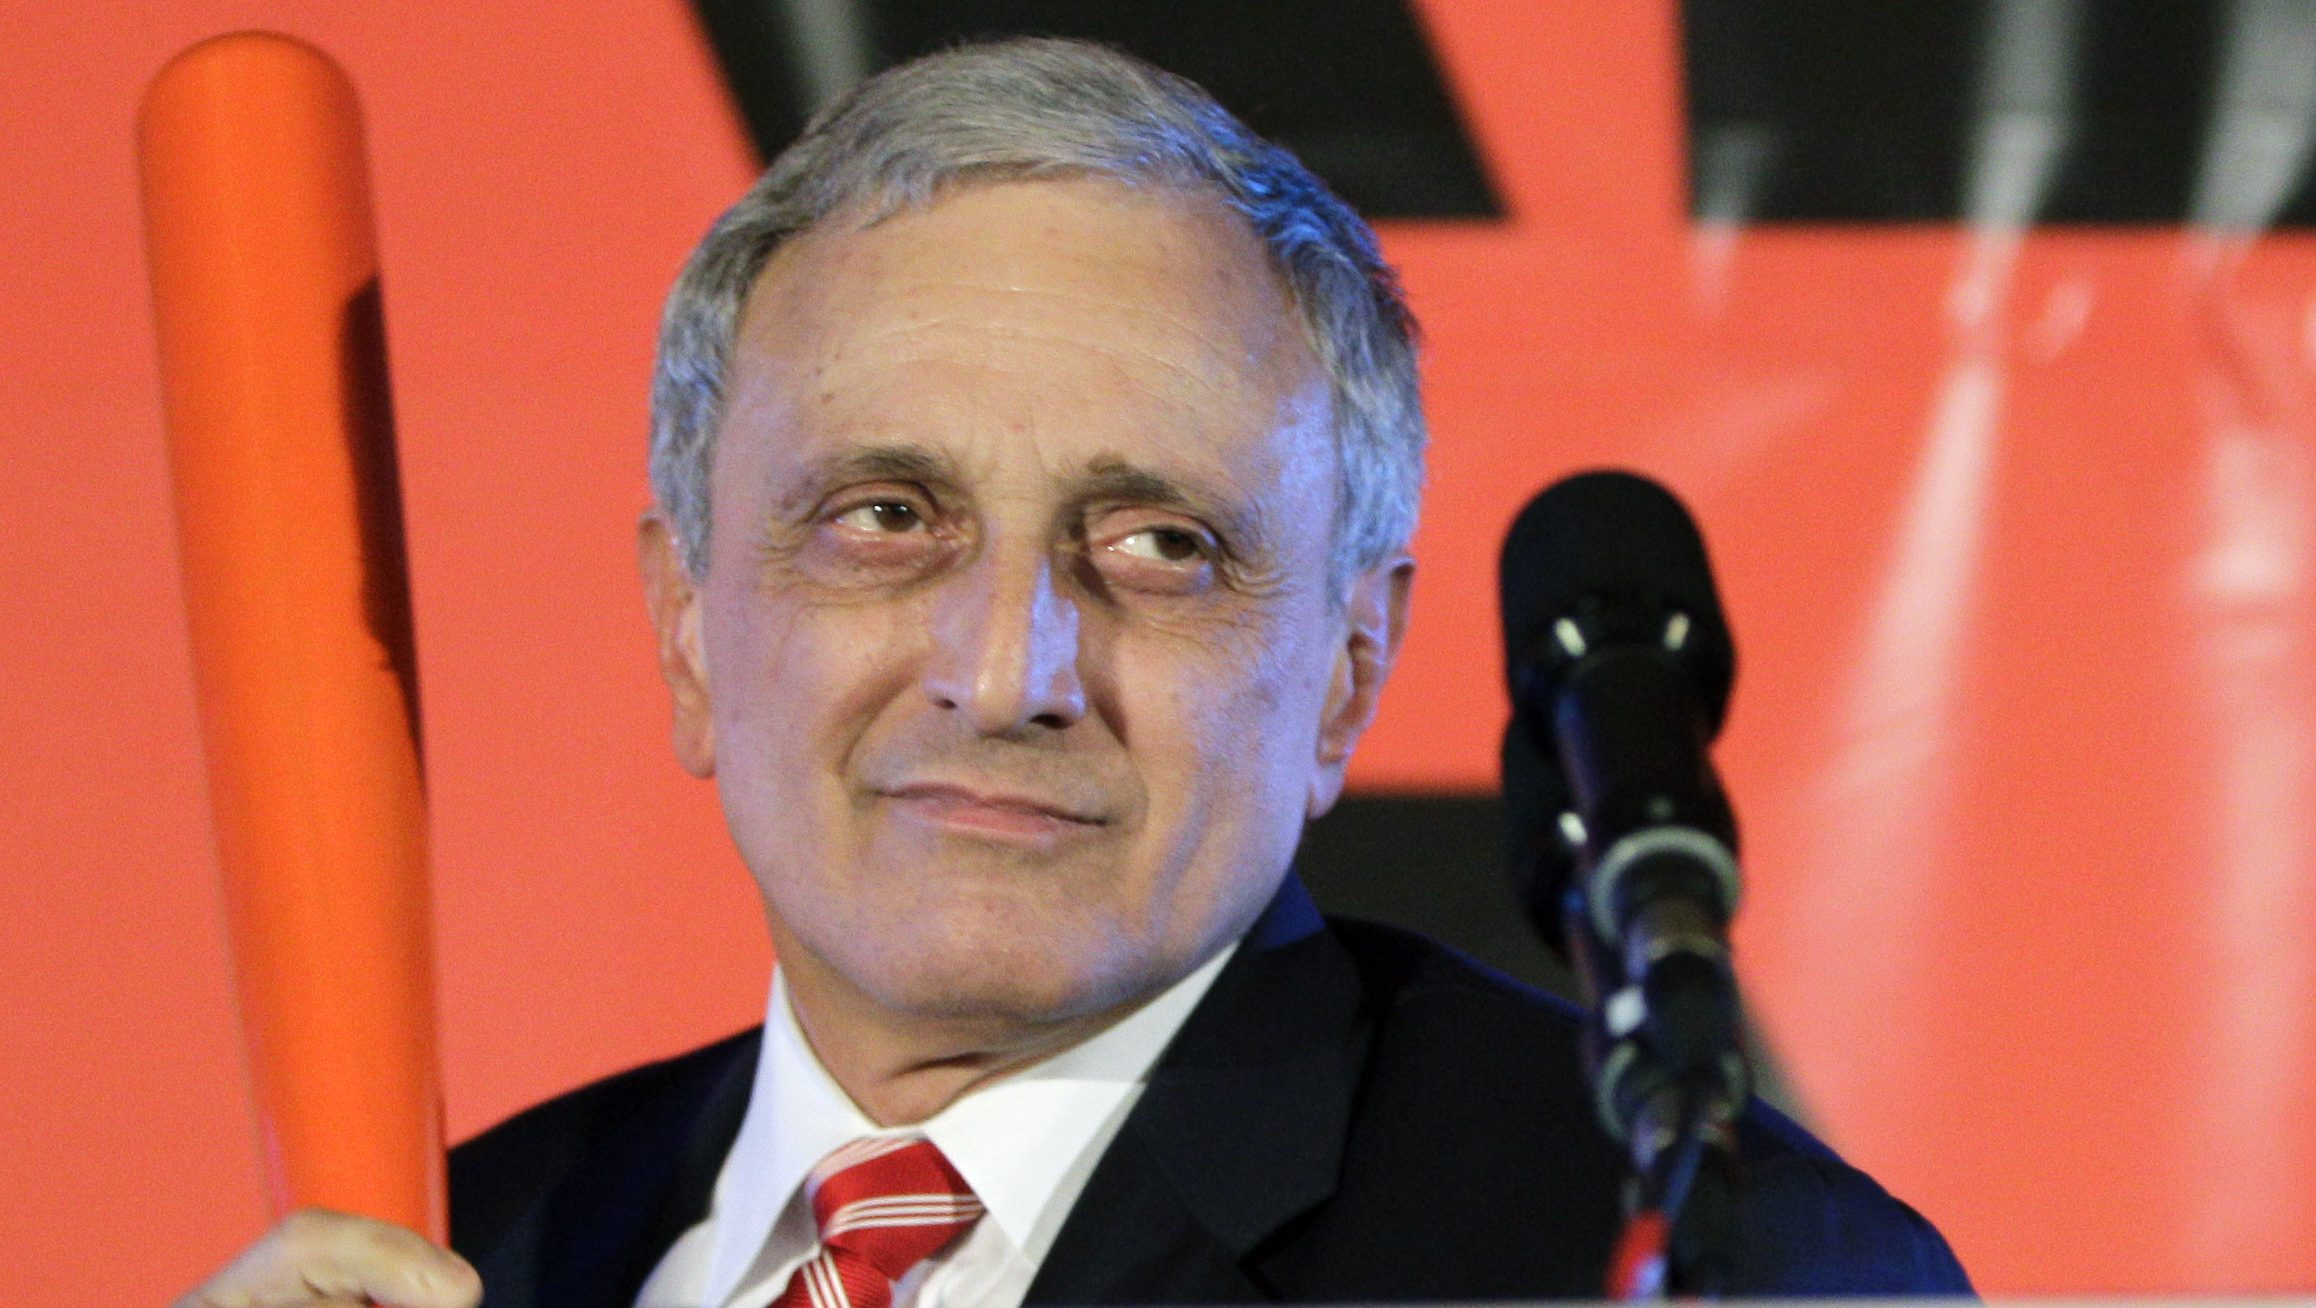 Republican gubernatorial candidate Carl Paladino holds a baseball bat as he concedes the election in Buffalo, N.Y., Tuesday, Nov. 2, 2010.